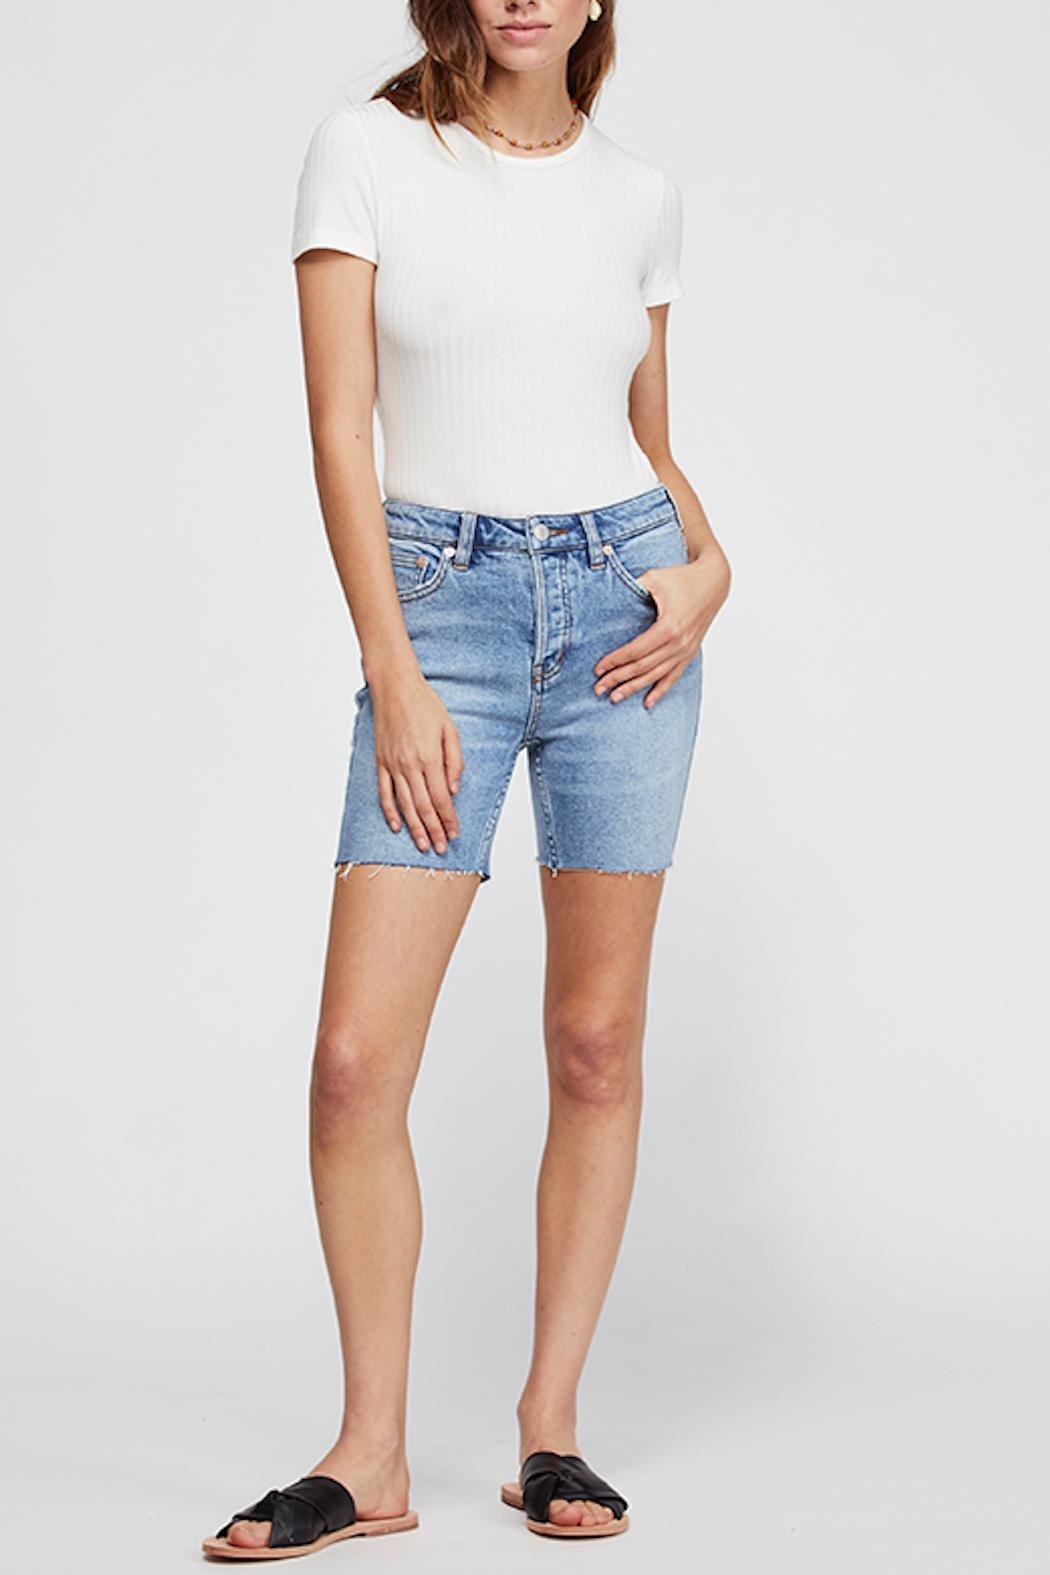 Free People Avery Bermuda Short - Front Cropped Image